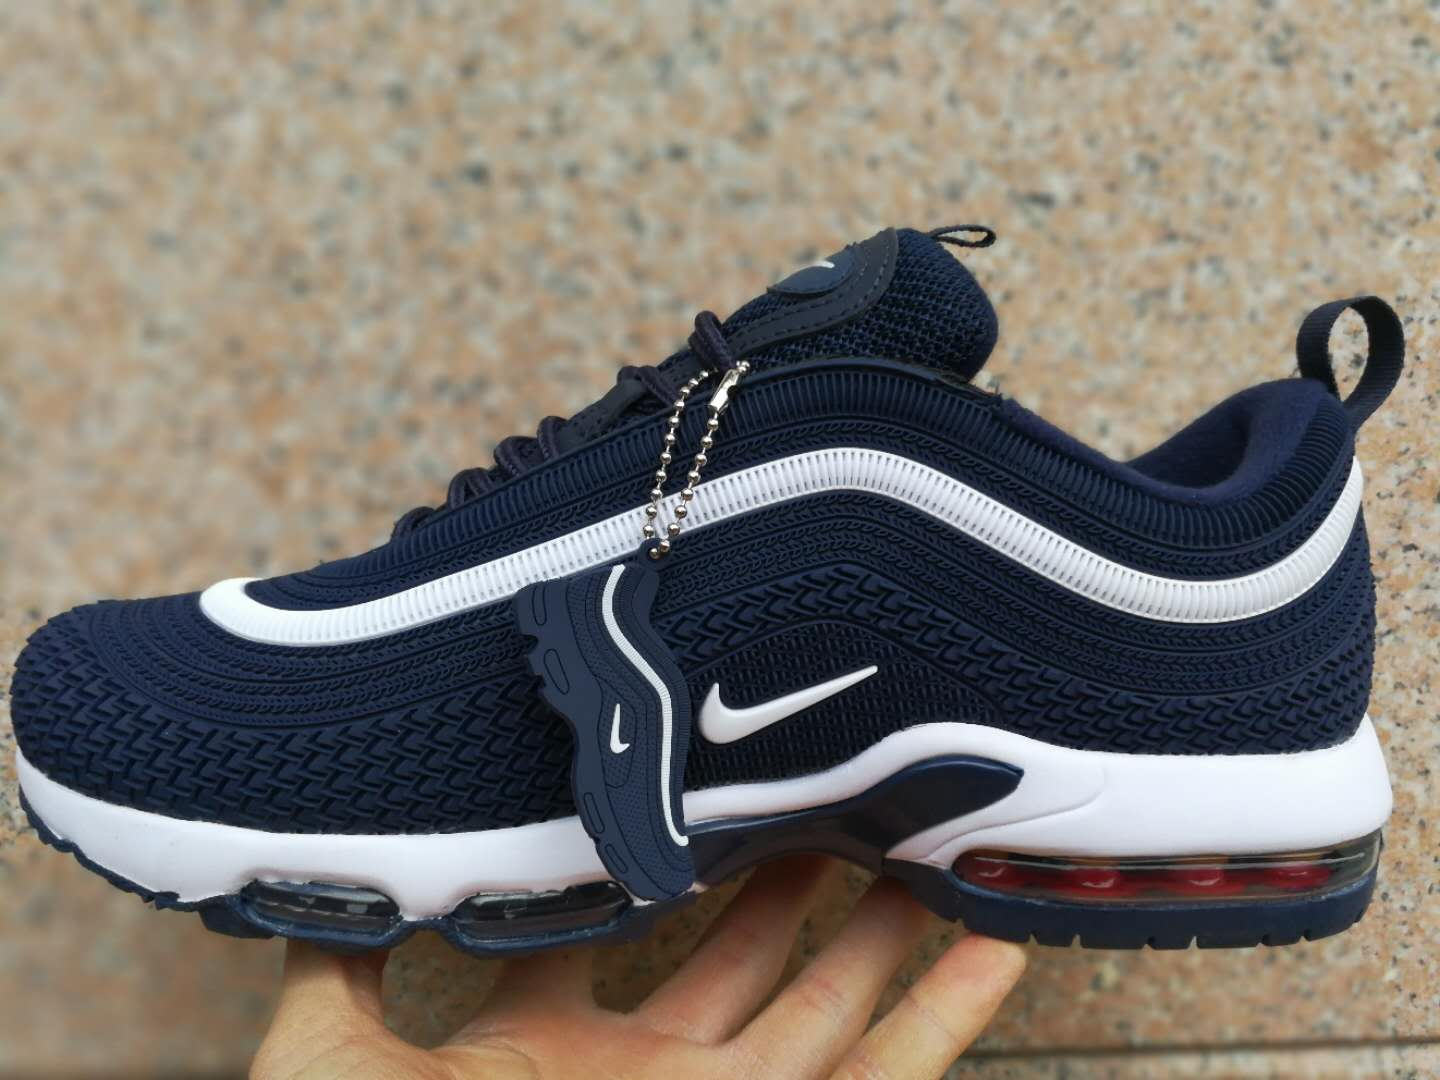 Nike Air Max TN 97 Plastic Deep Blue White Shoes